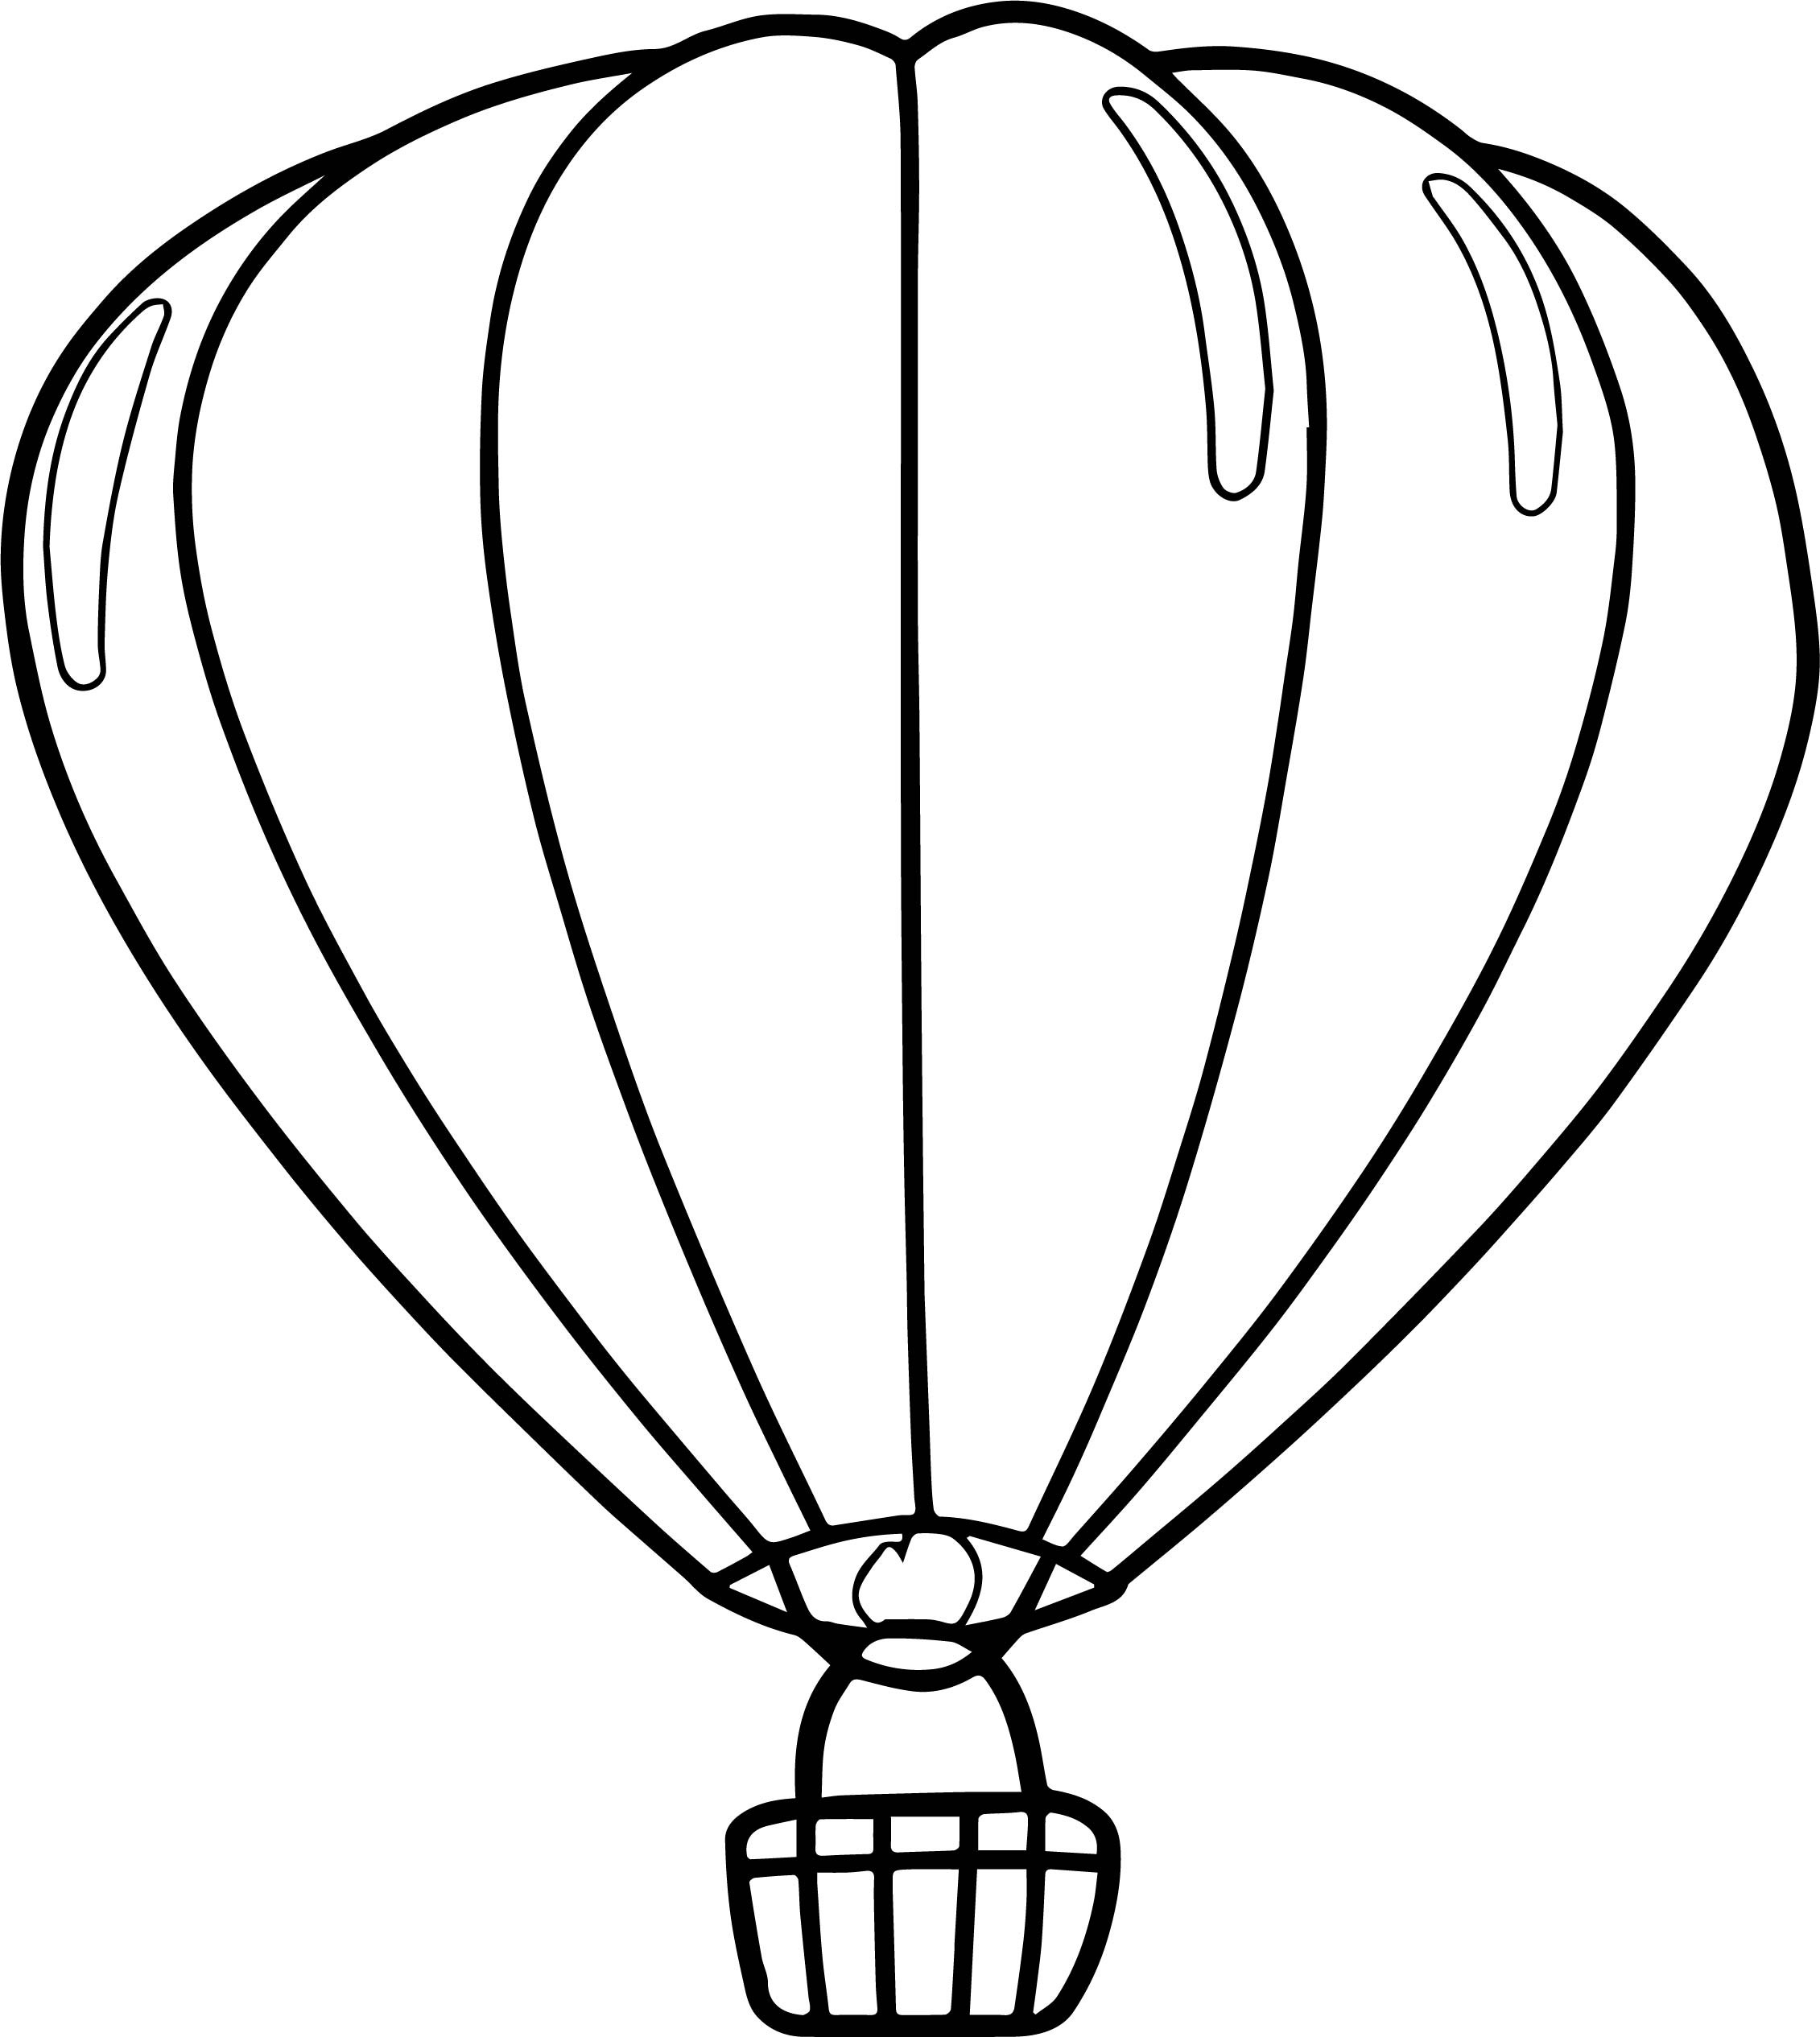 2261x2531 Drawings Of Hot Air Balloons Photo Album